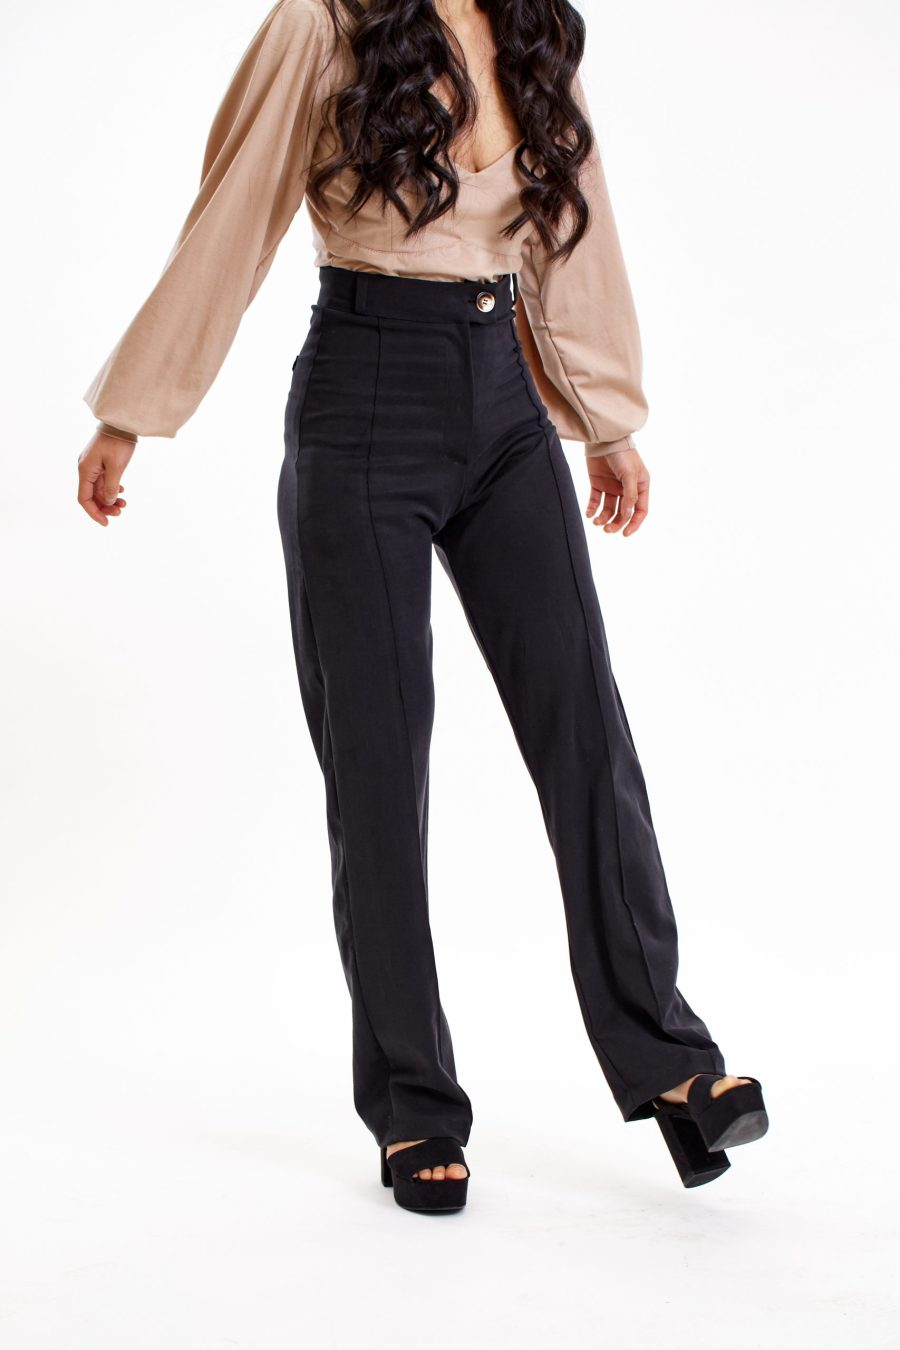 Dawn pants in black front